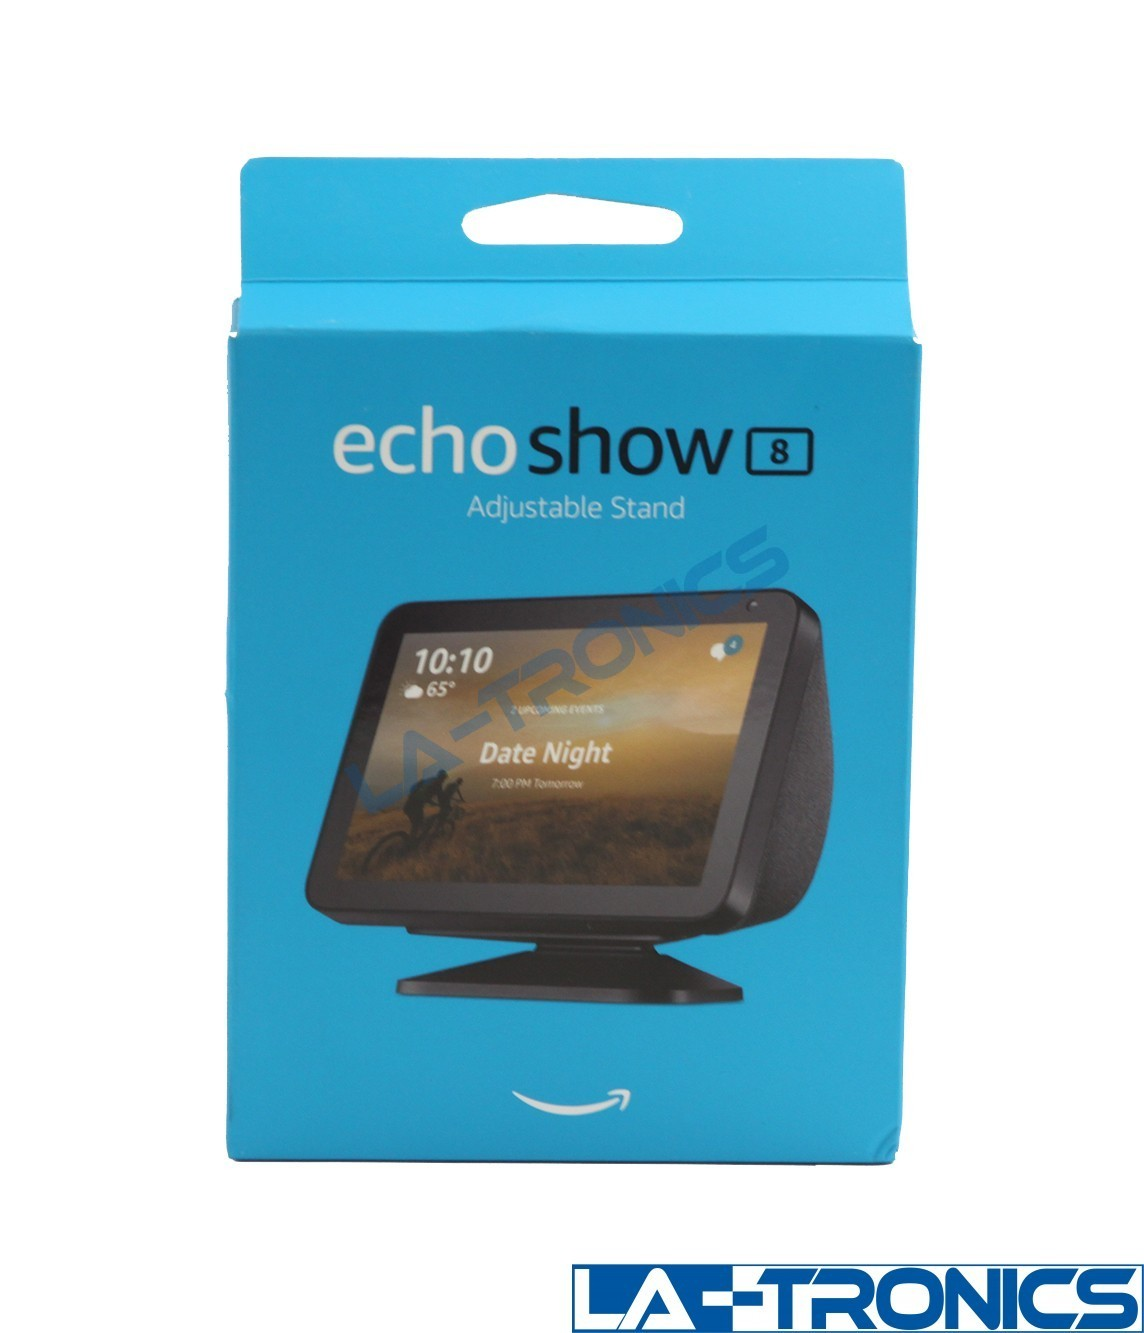 NEW Amazon B07T575145 Echo Show 8 Adjustable Stand - Charcoal